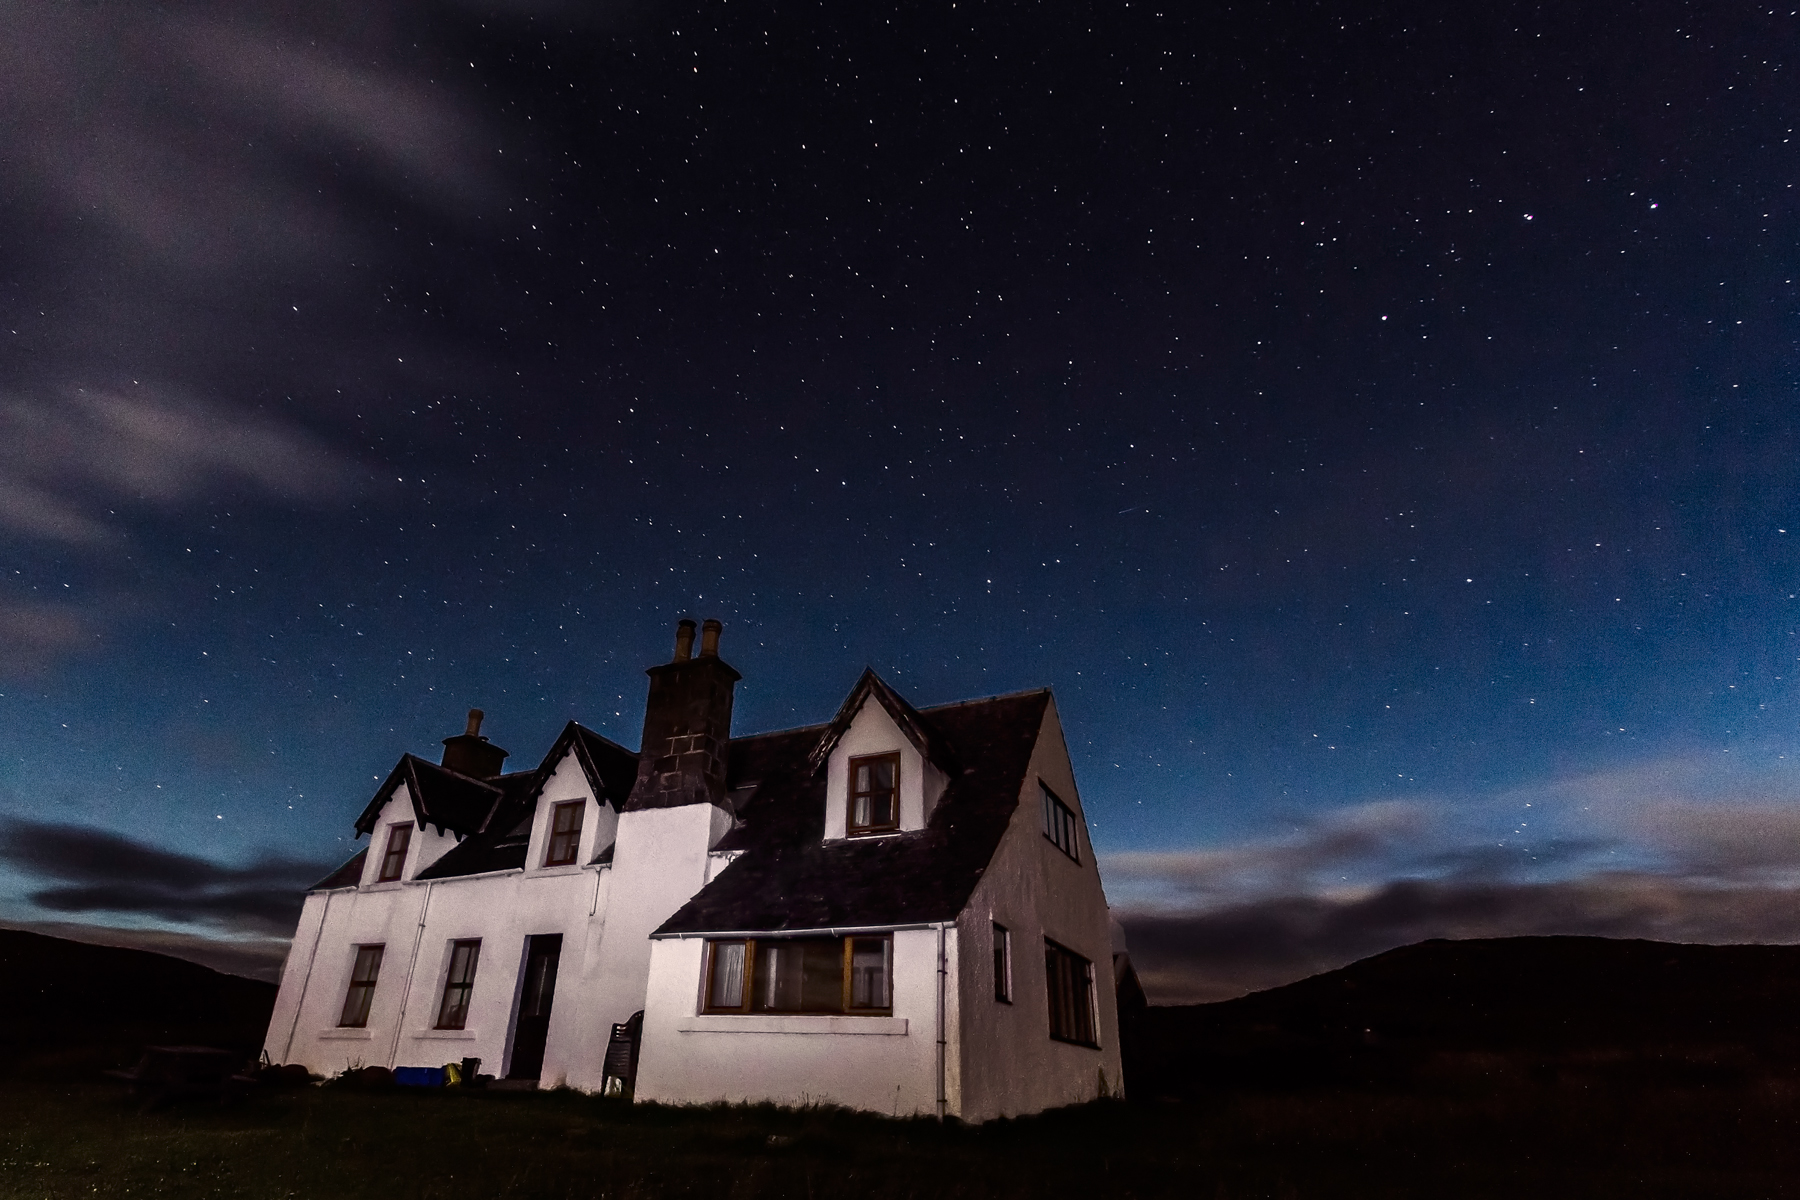 School House mjgholland photography